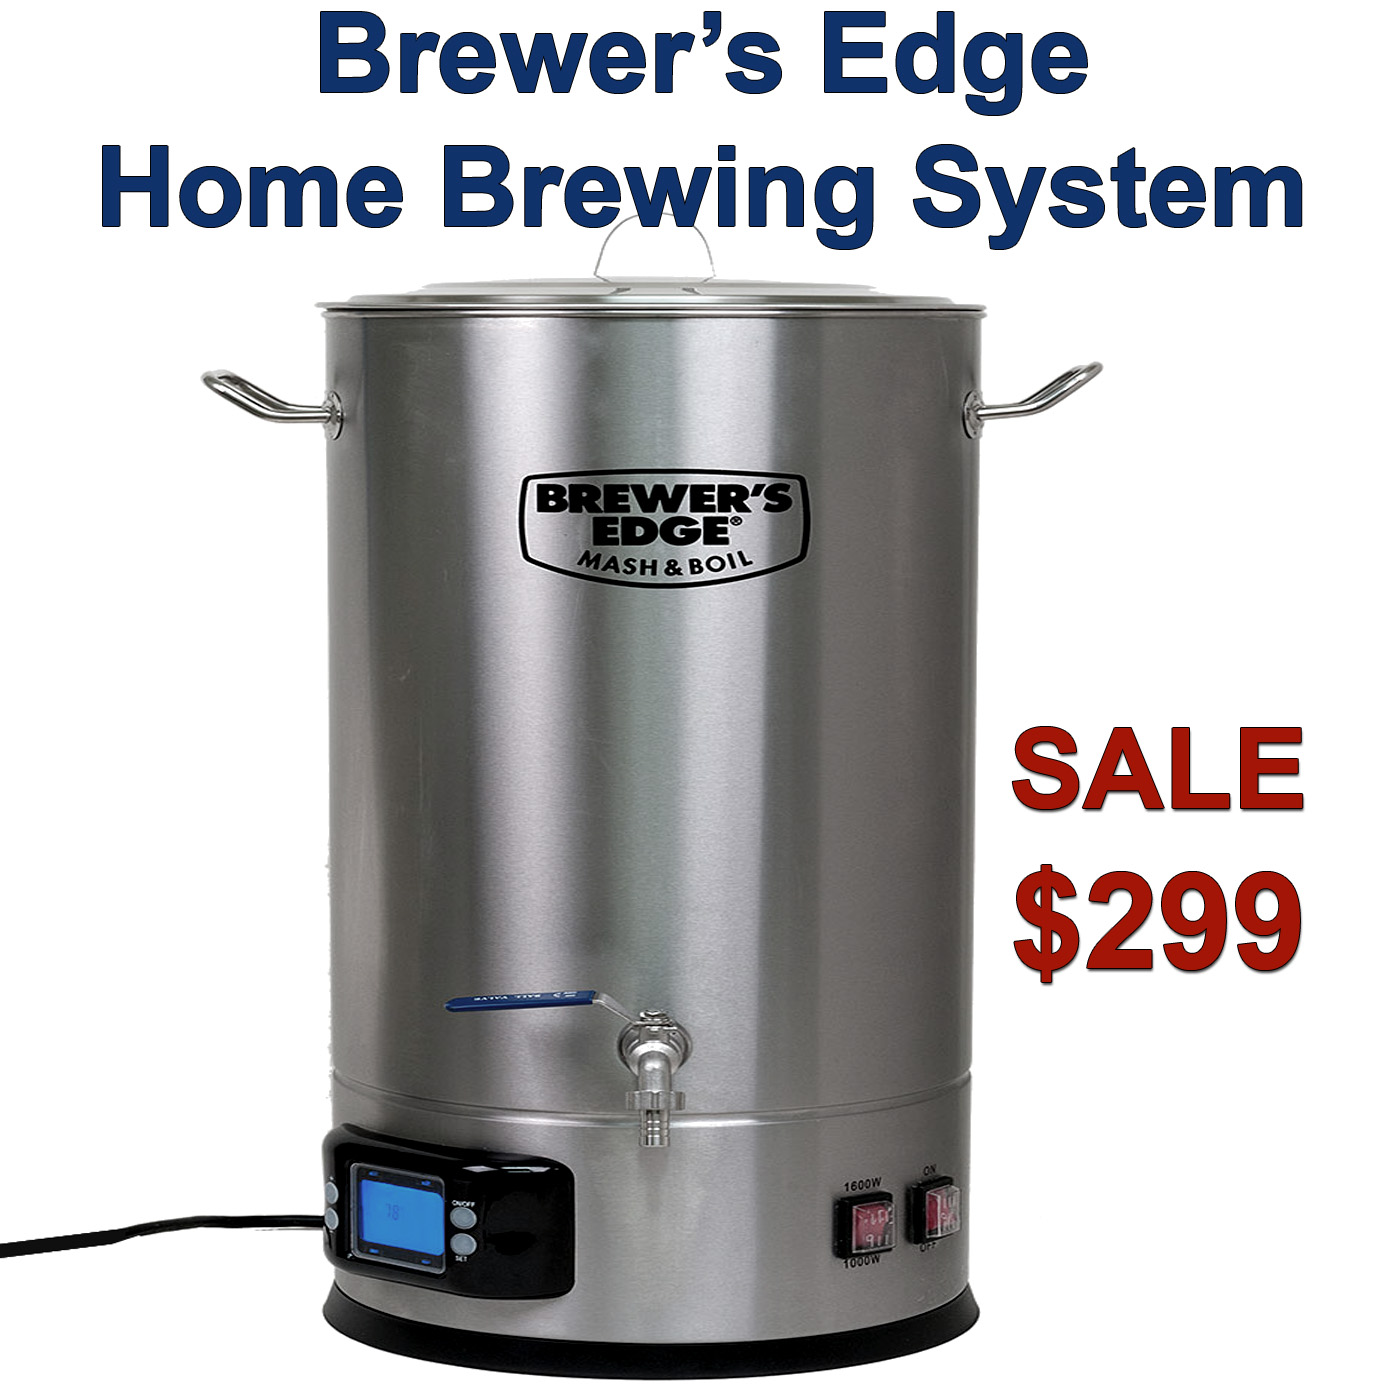 Brewers Edge Home Brewing System Just $299 Coupon Code